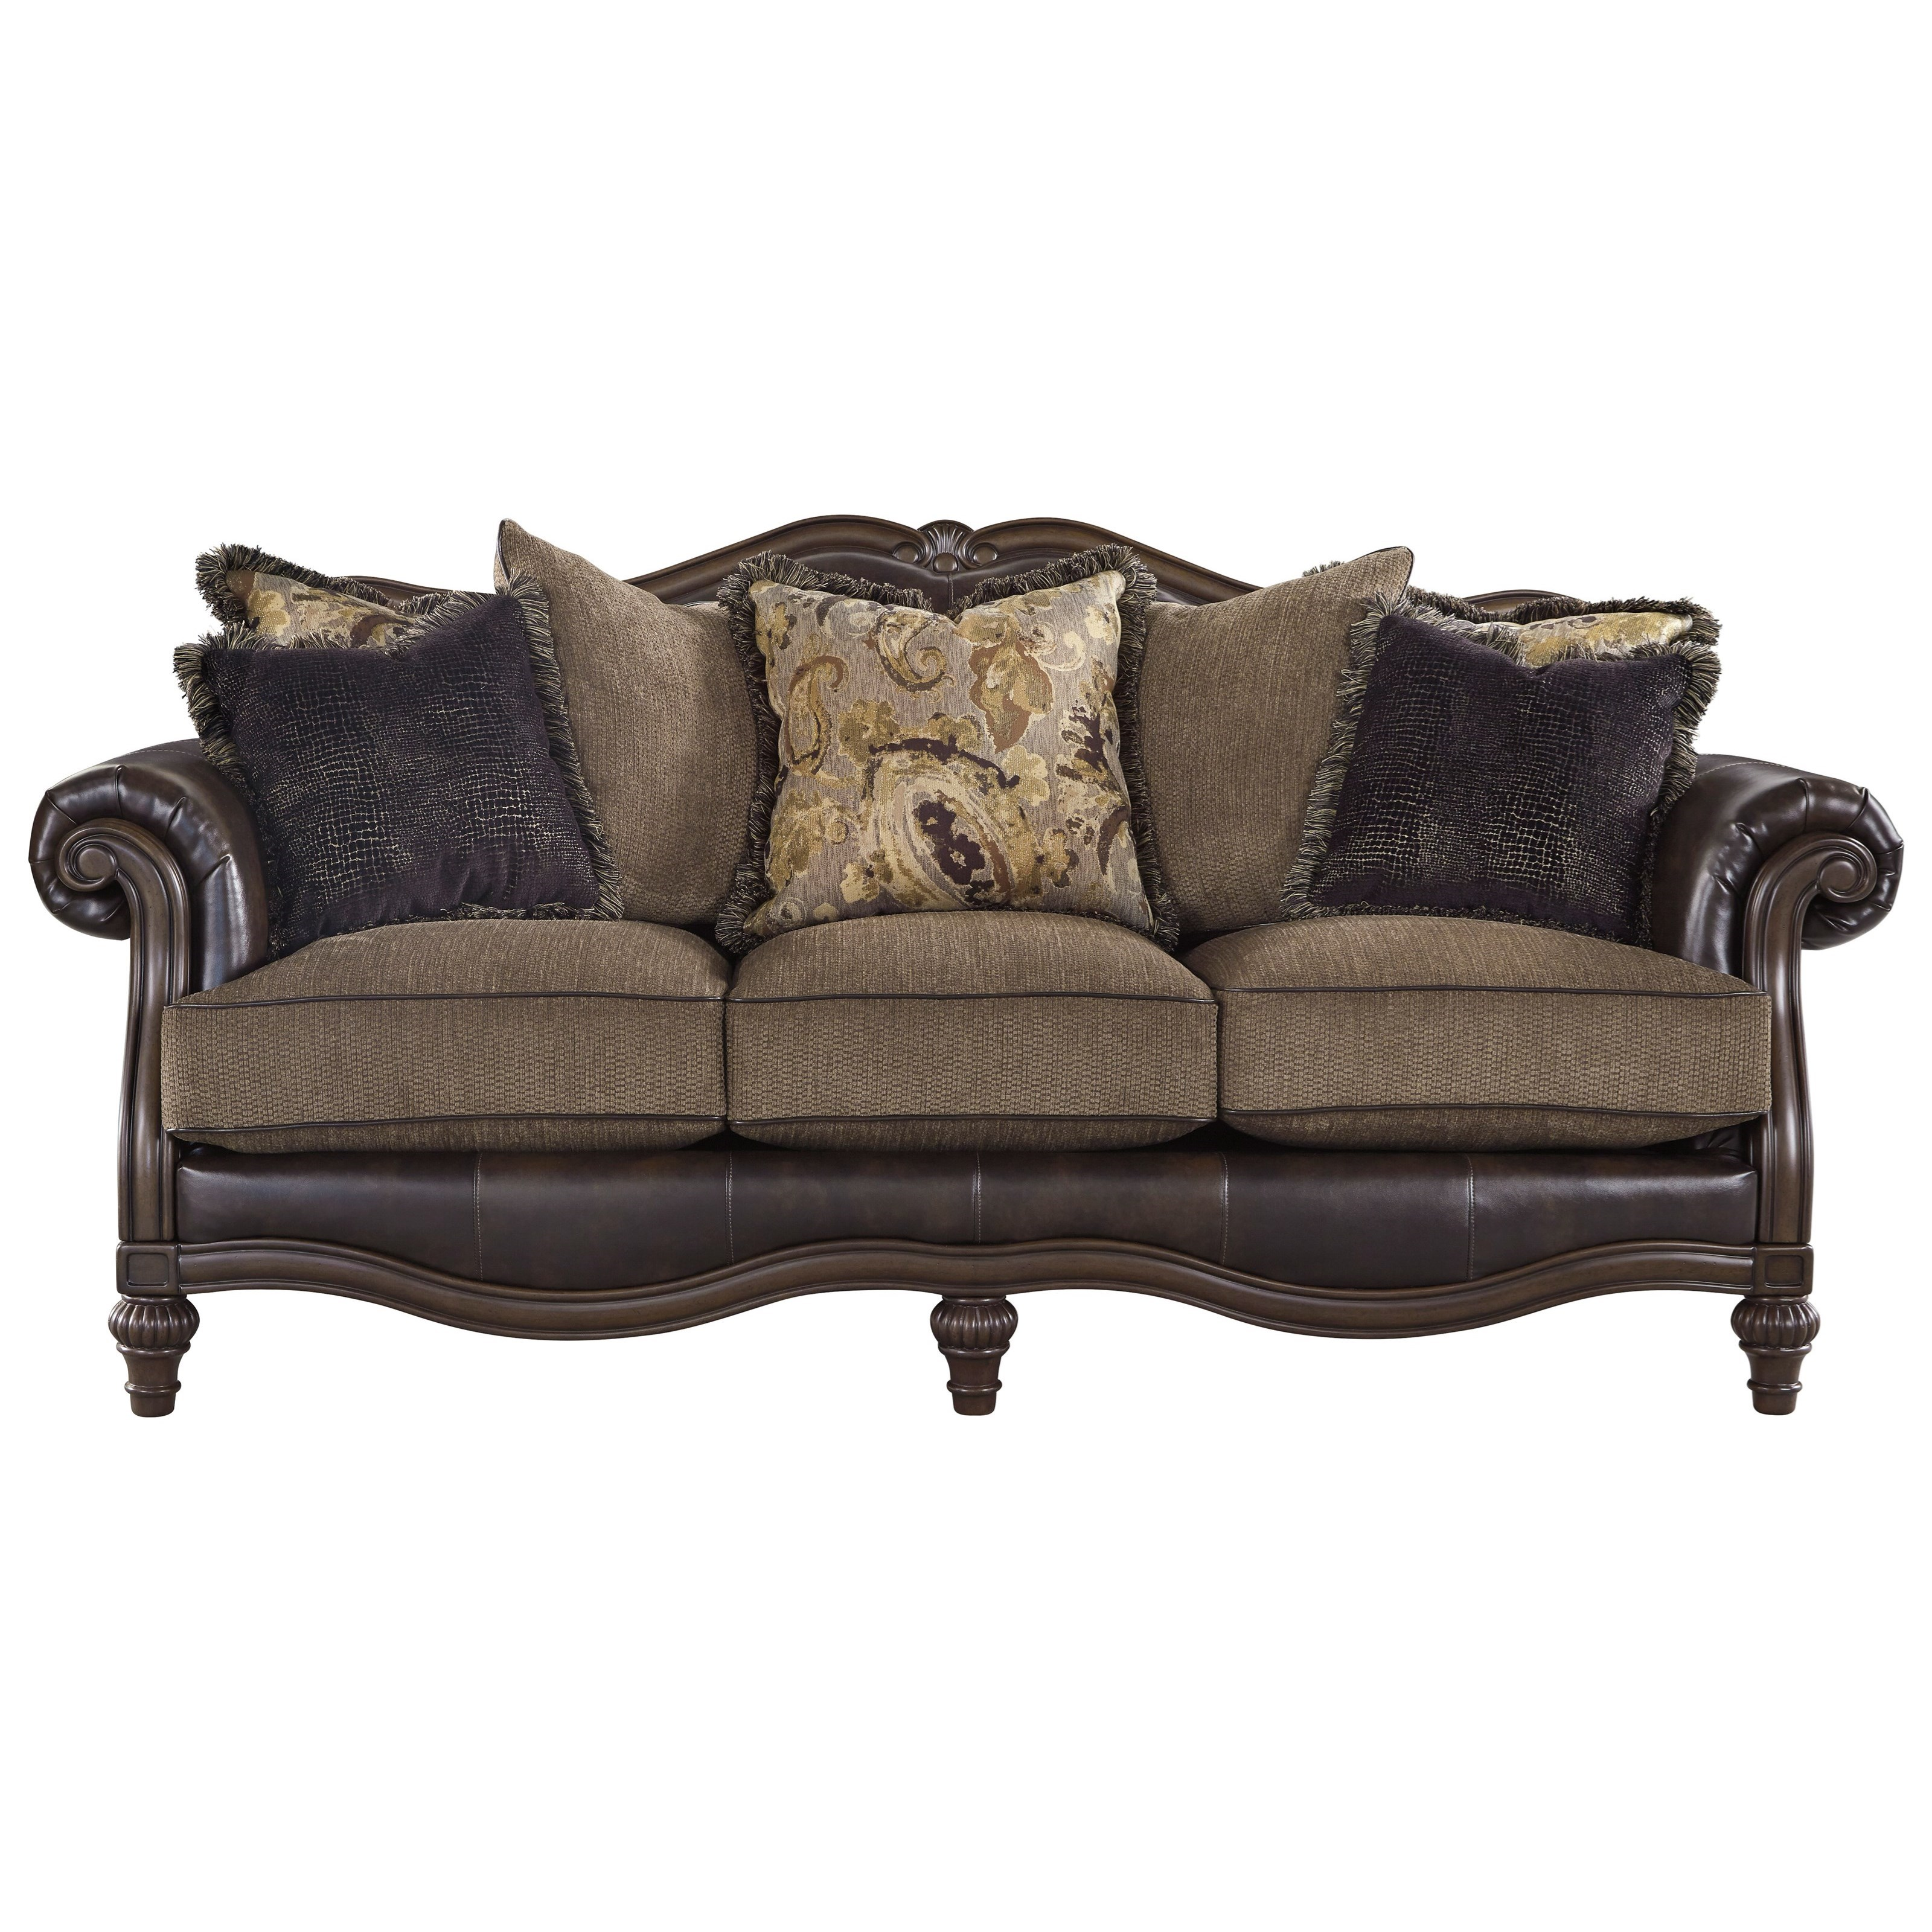 Signature Design By Ashley Winnsboro Durablend 5560238 Traditional Fabric Bonded Leather Match